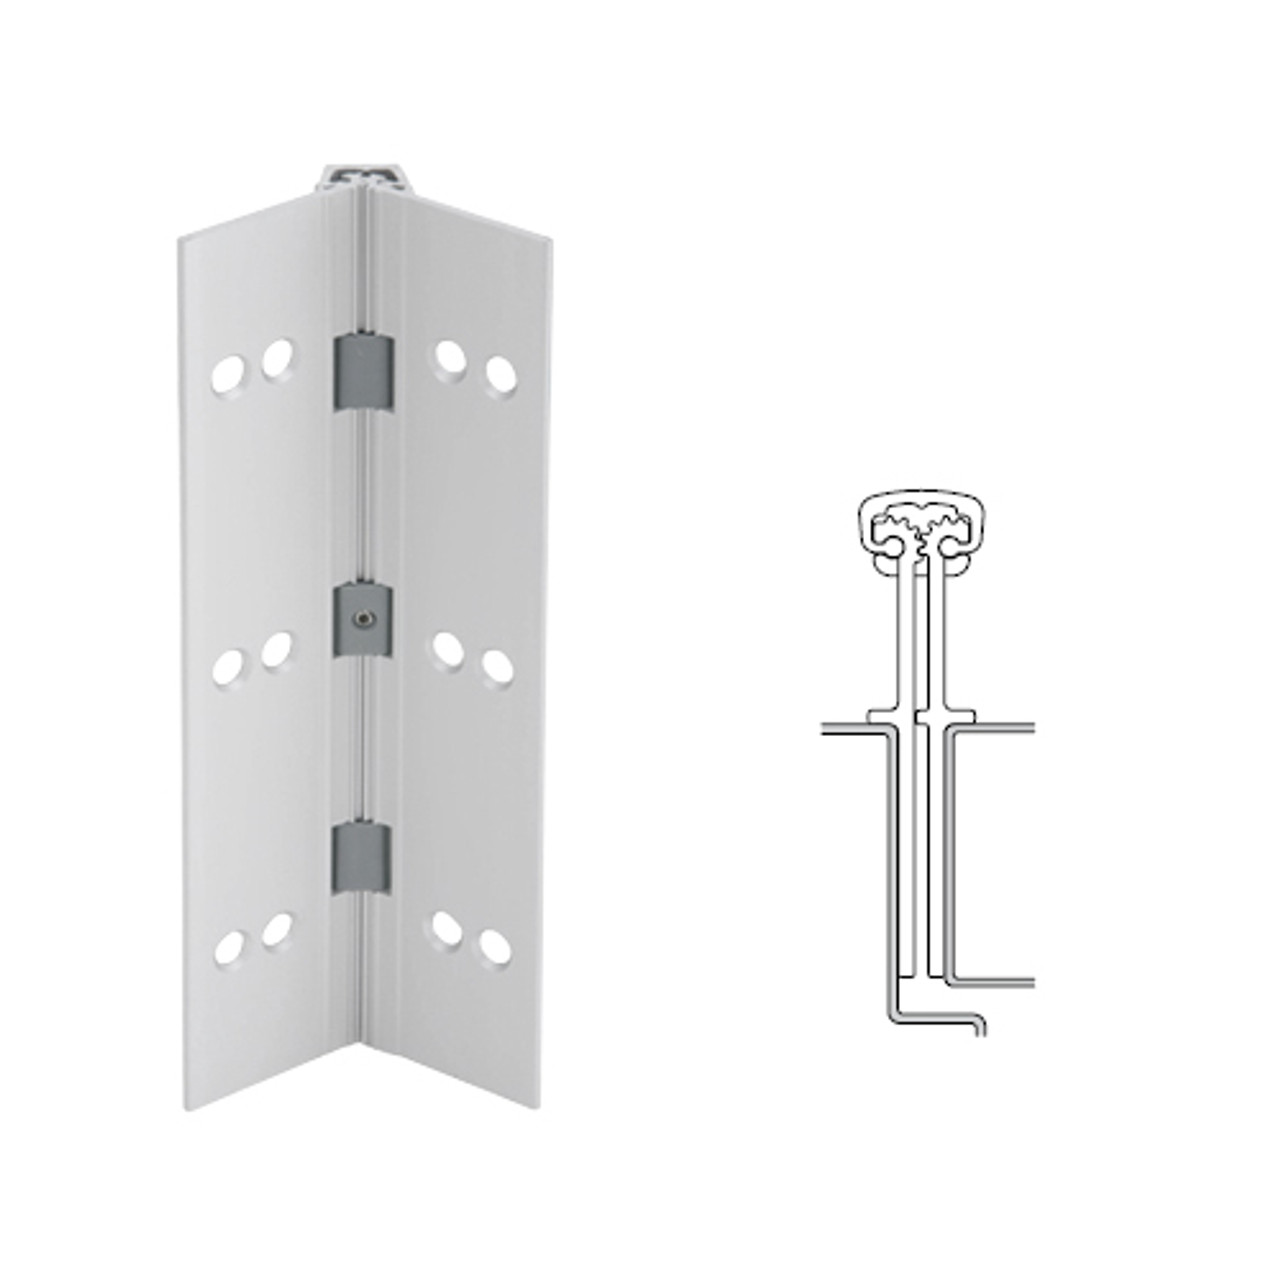 040XY-US28-120-TFWD IVES Full Mortise Continuous Geared Hinges with Thread Forming Screws in Satin Aluminum